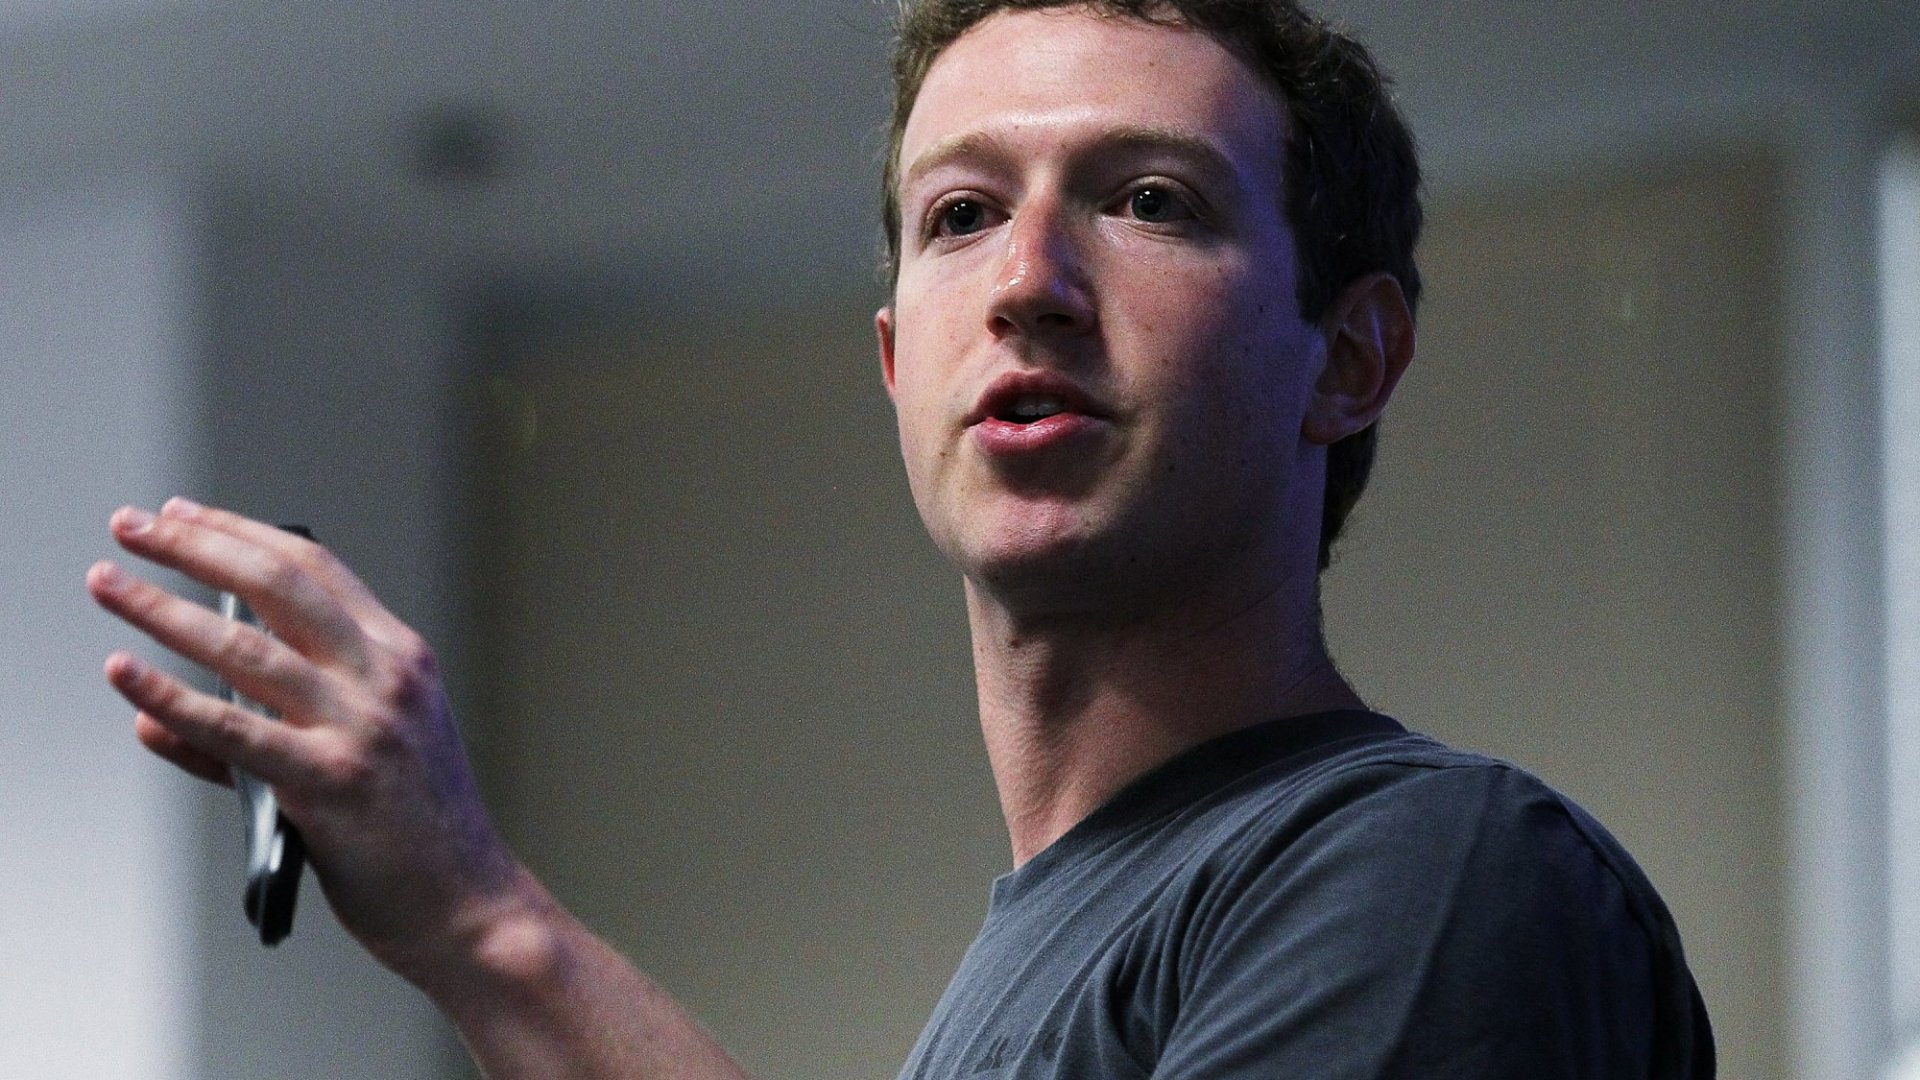 Behind the Enduring 'Genius' of Mark Zuckerberg